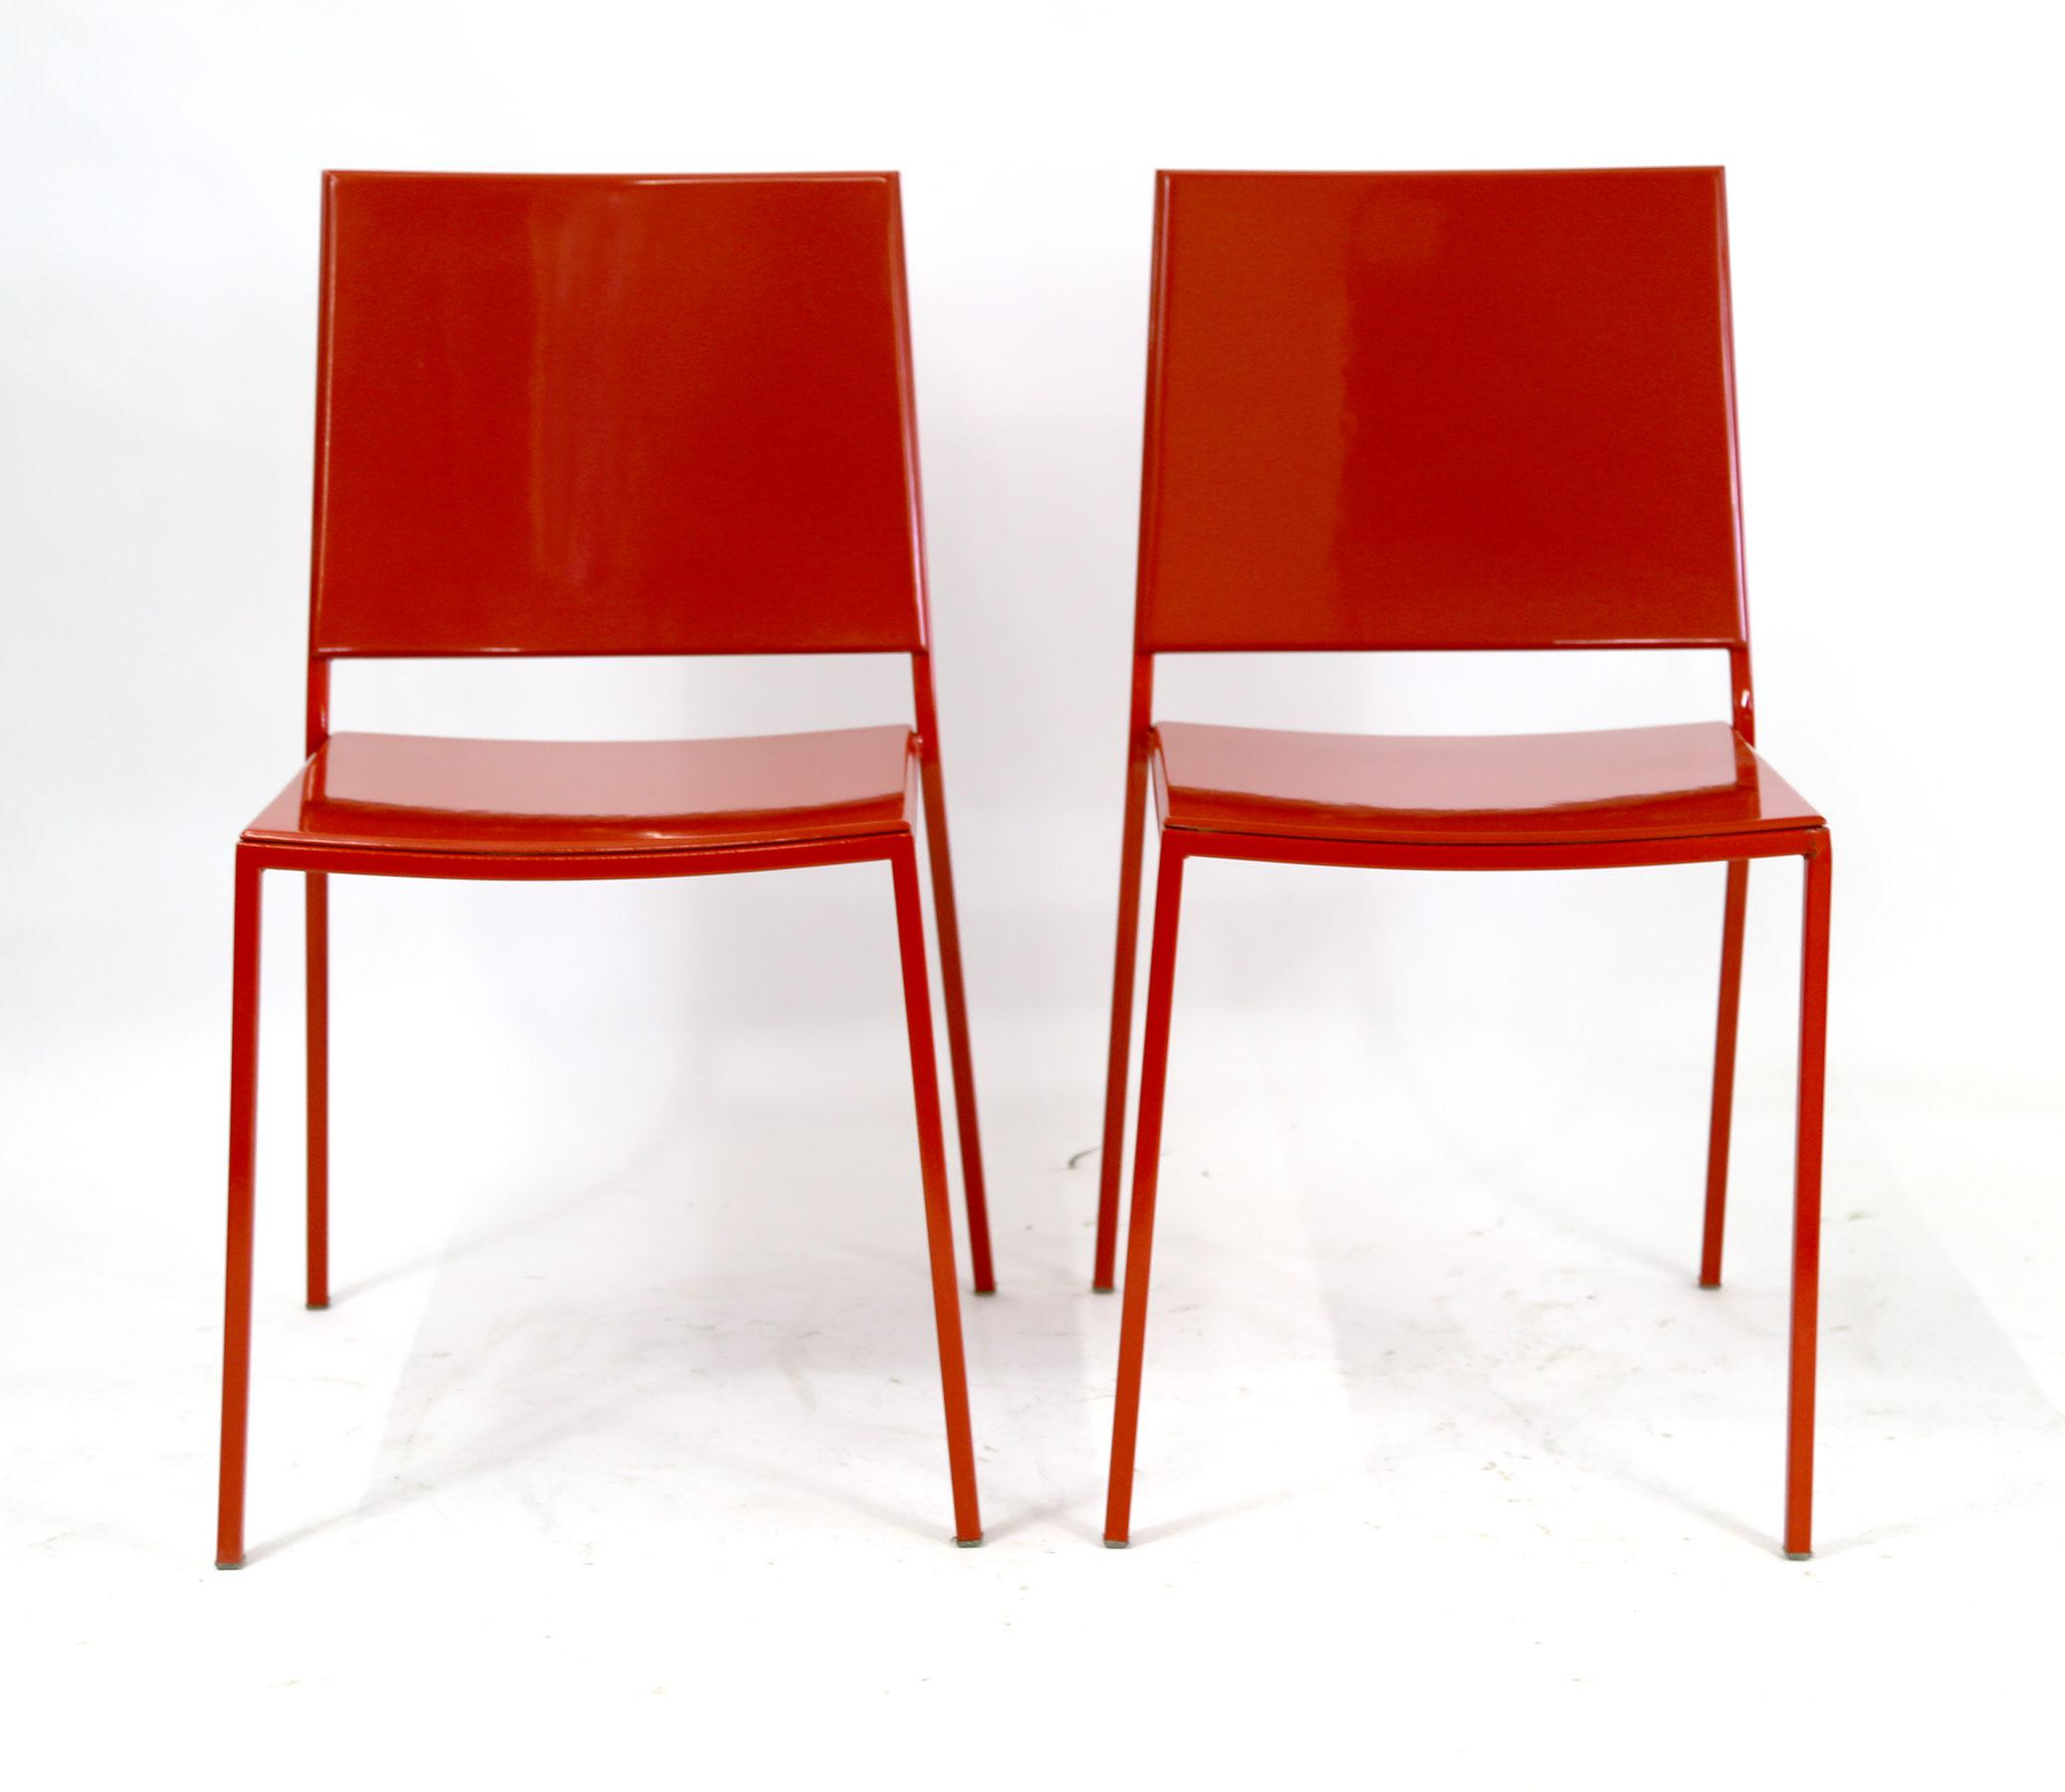 Superieur Italian Italian Made Minimal Modern Red Metal Chairs   A Pair For Sale    Image 3